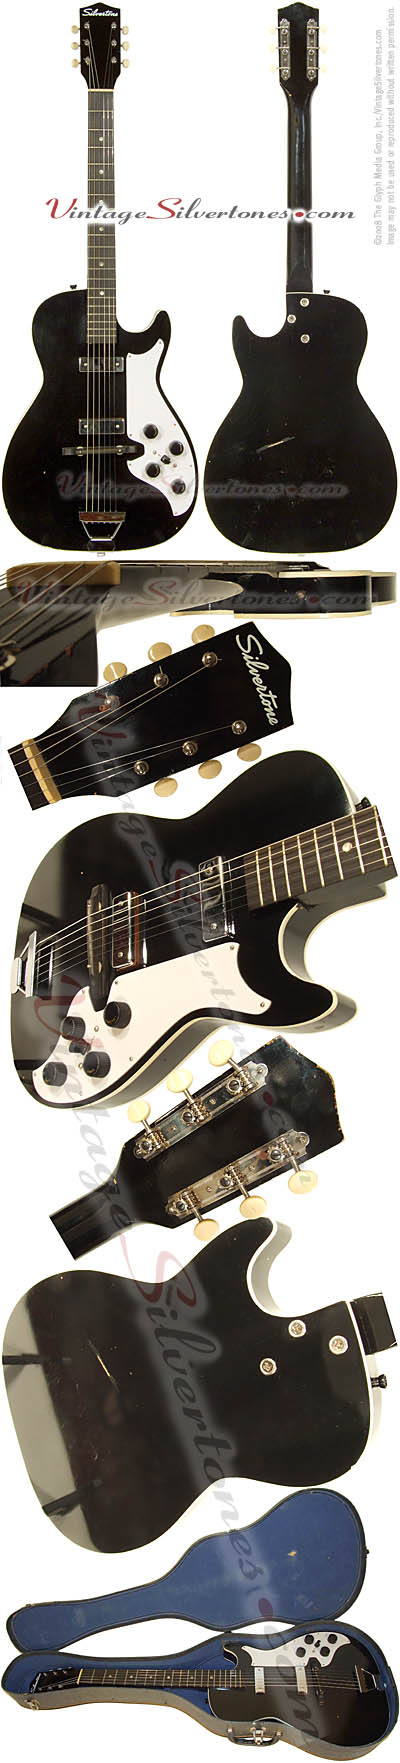 Silvertone 1420L - Harmony Stratotone - 2 pickup, black hollow body electric guitar made in Chicago IL USA 1962 - B-11/2008